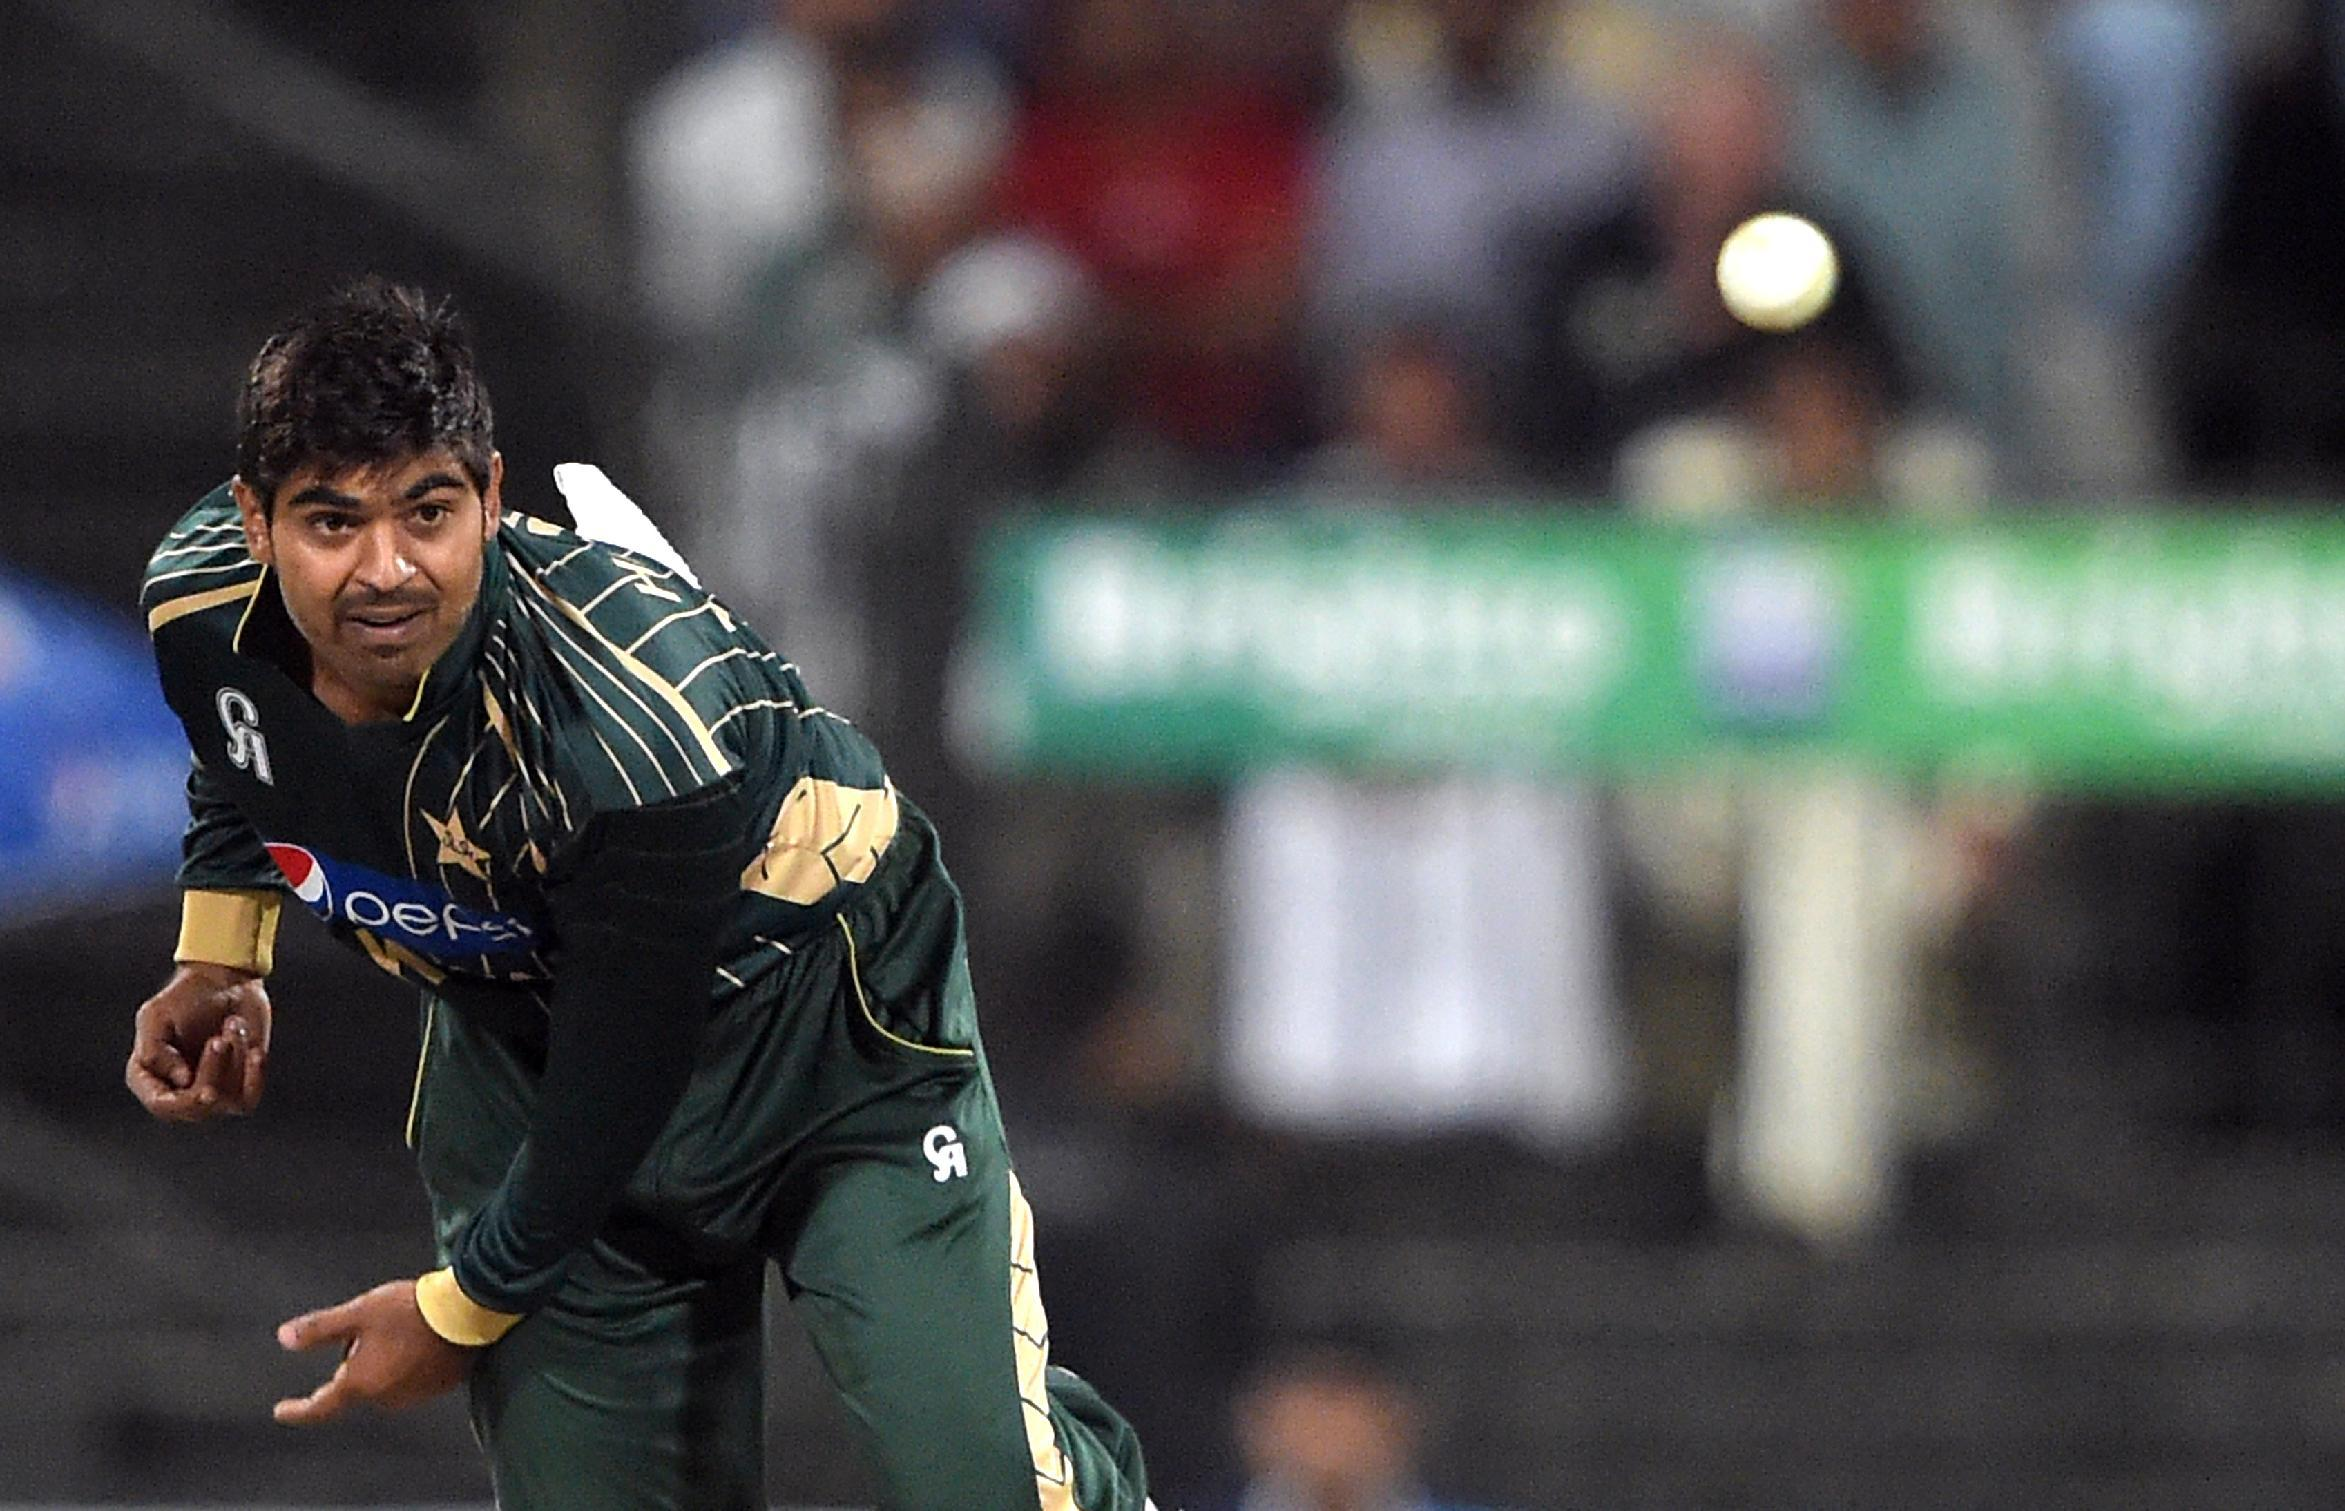 Pakistan cricket player hit for six by ghost sighting